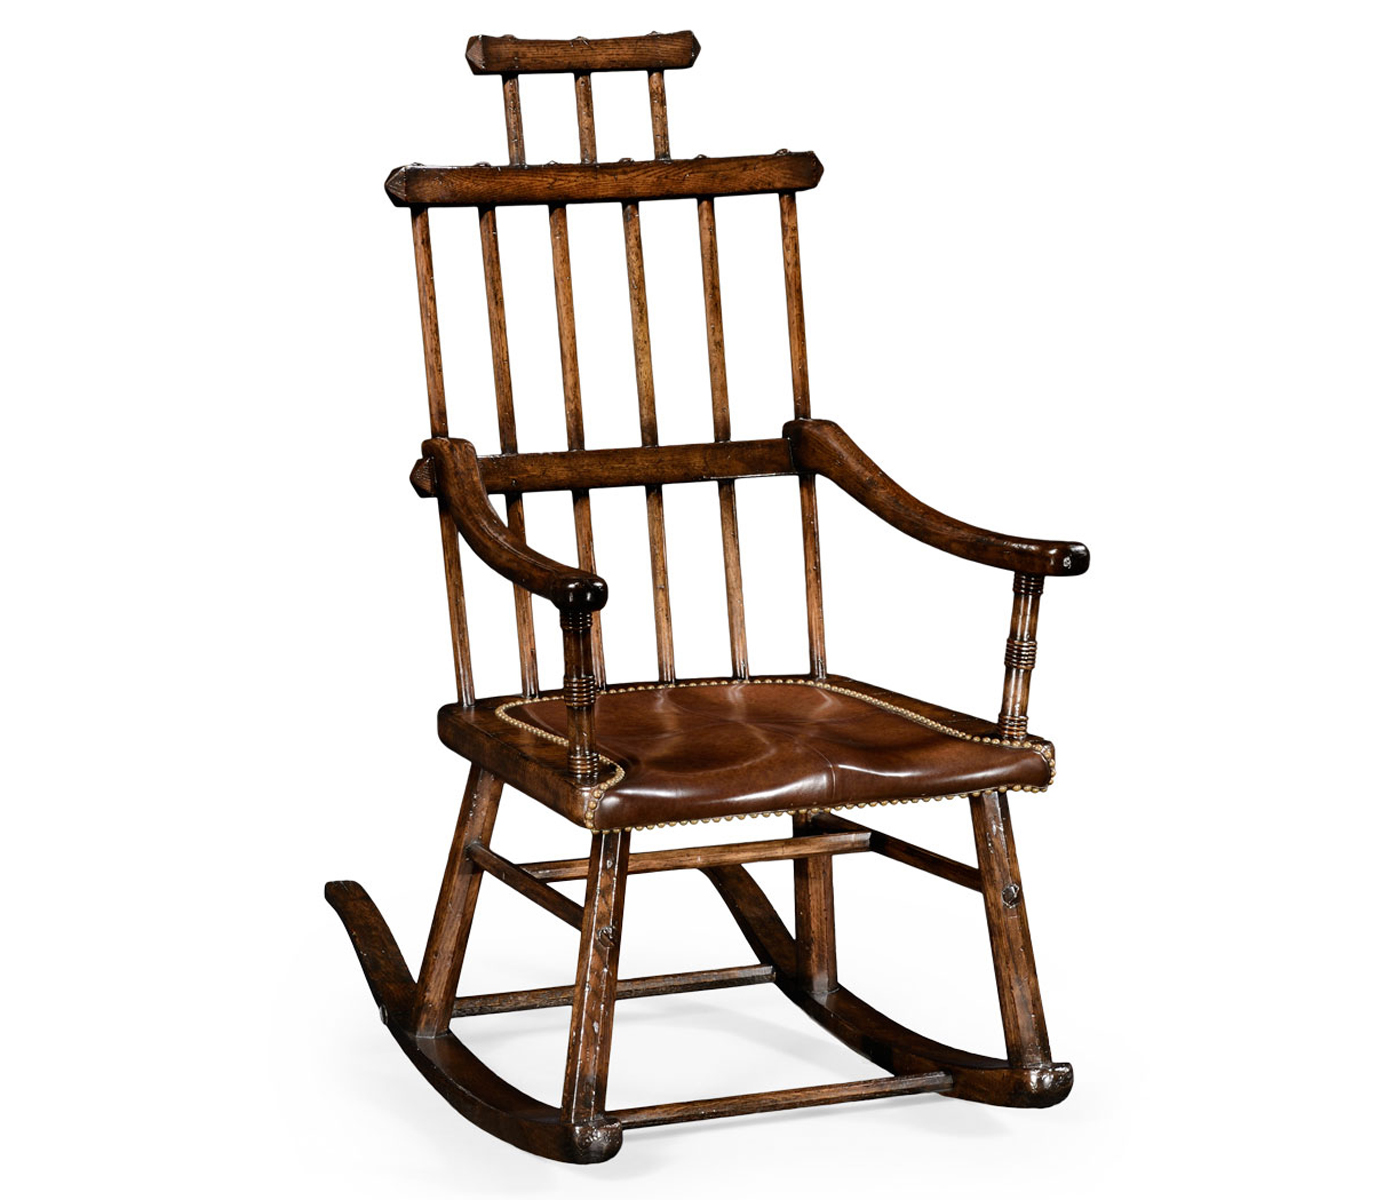 oak windsor chairs rifton activity chair style rocking with dark antique chestnut